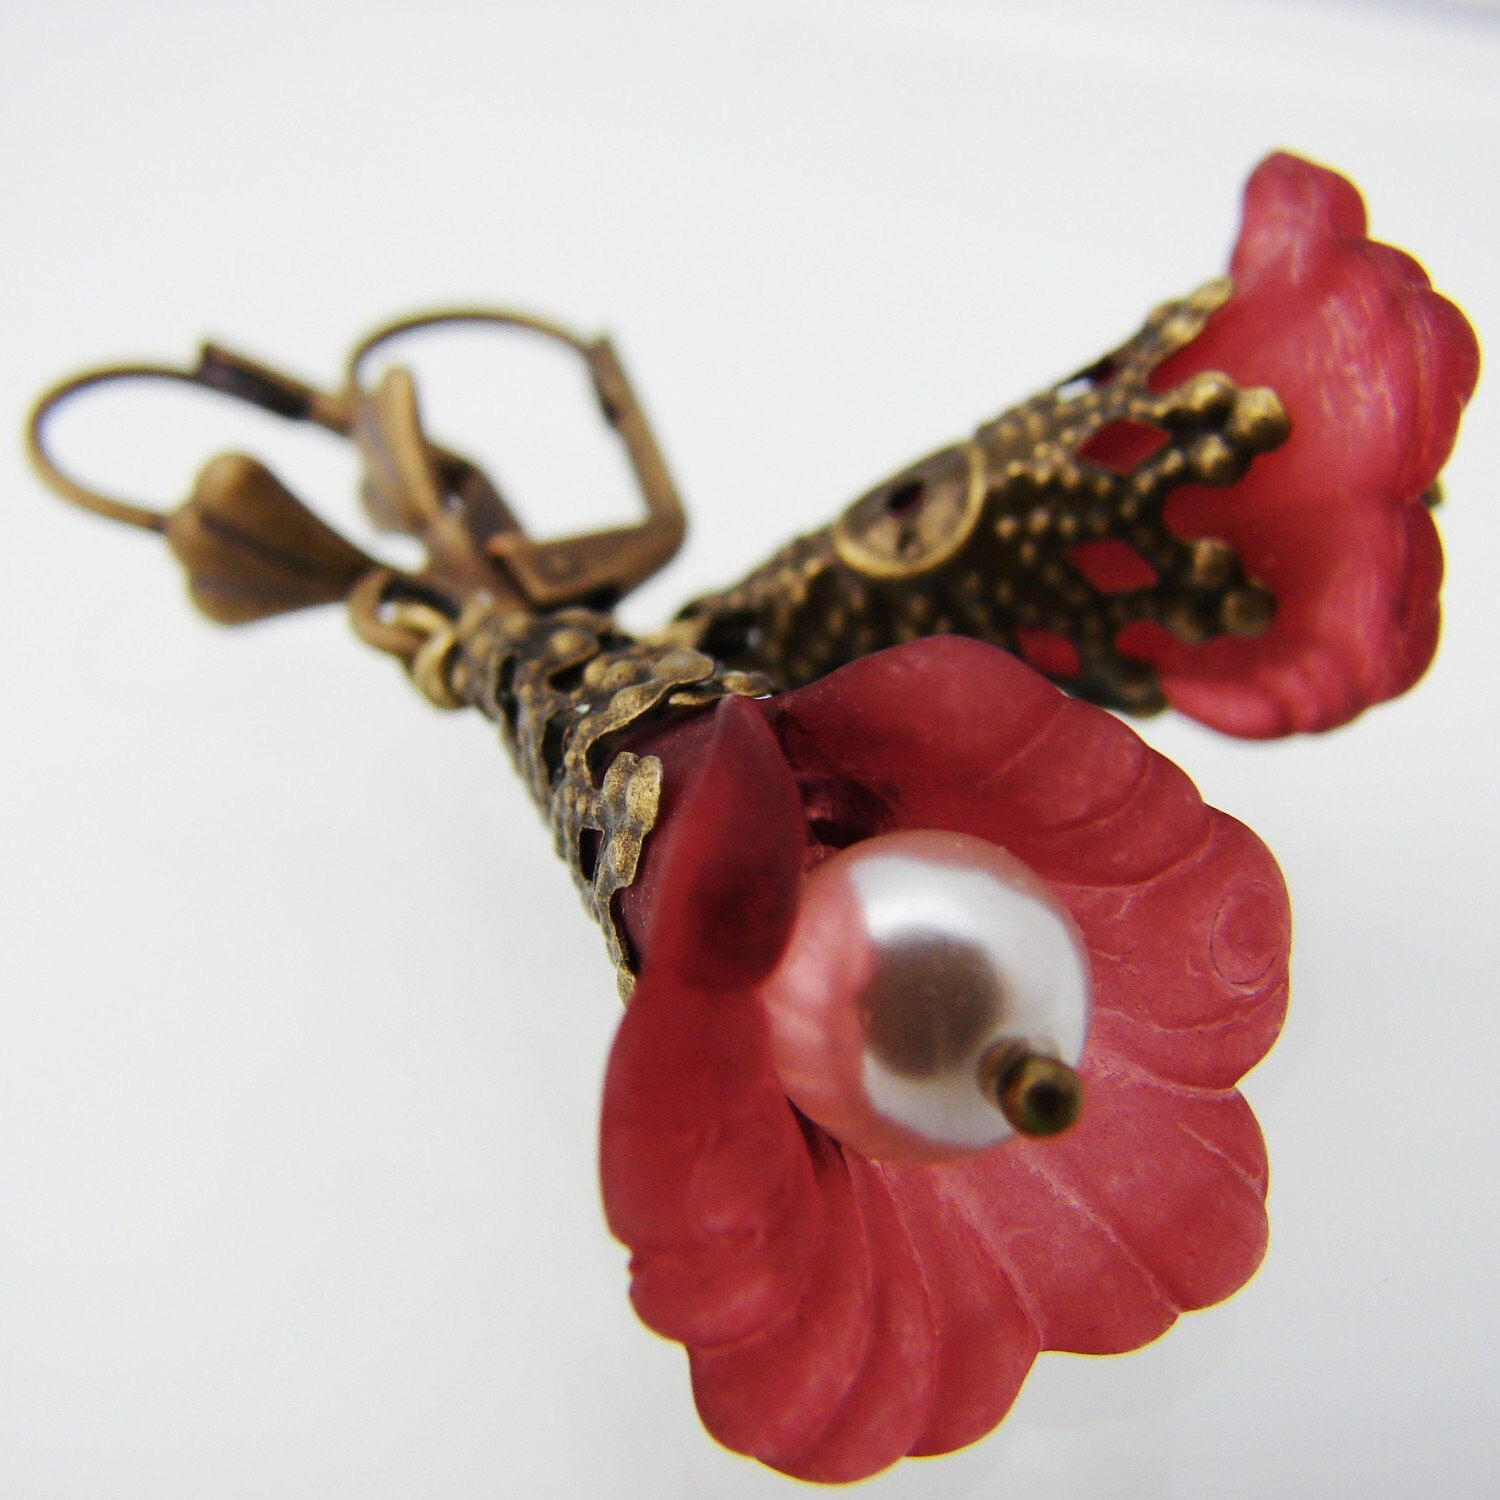 Merlot Lucite Flower Earrings on antiqued brass earwires